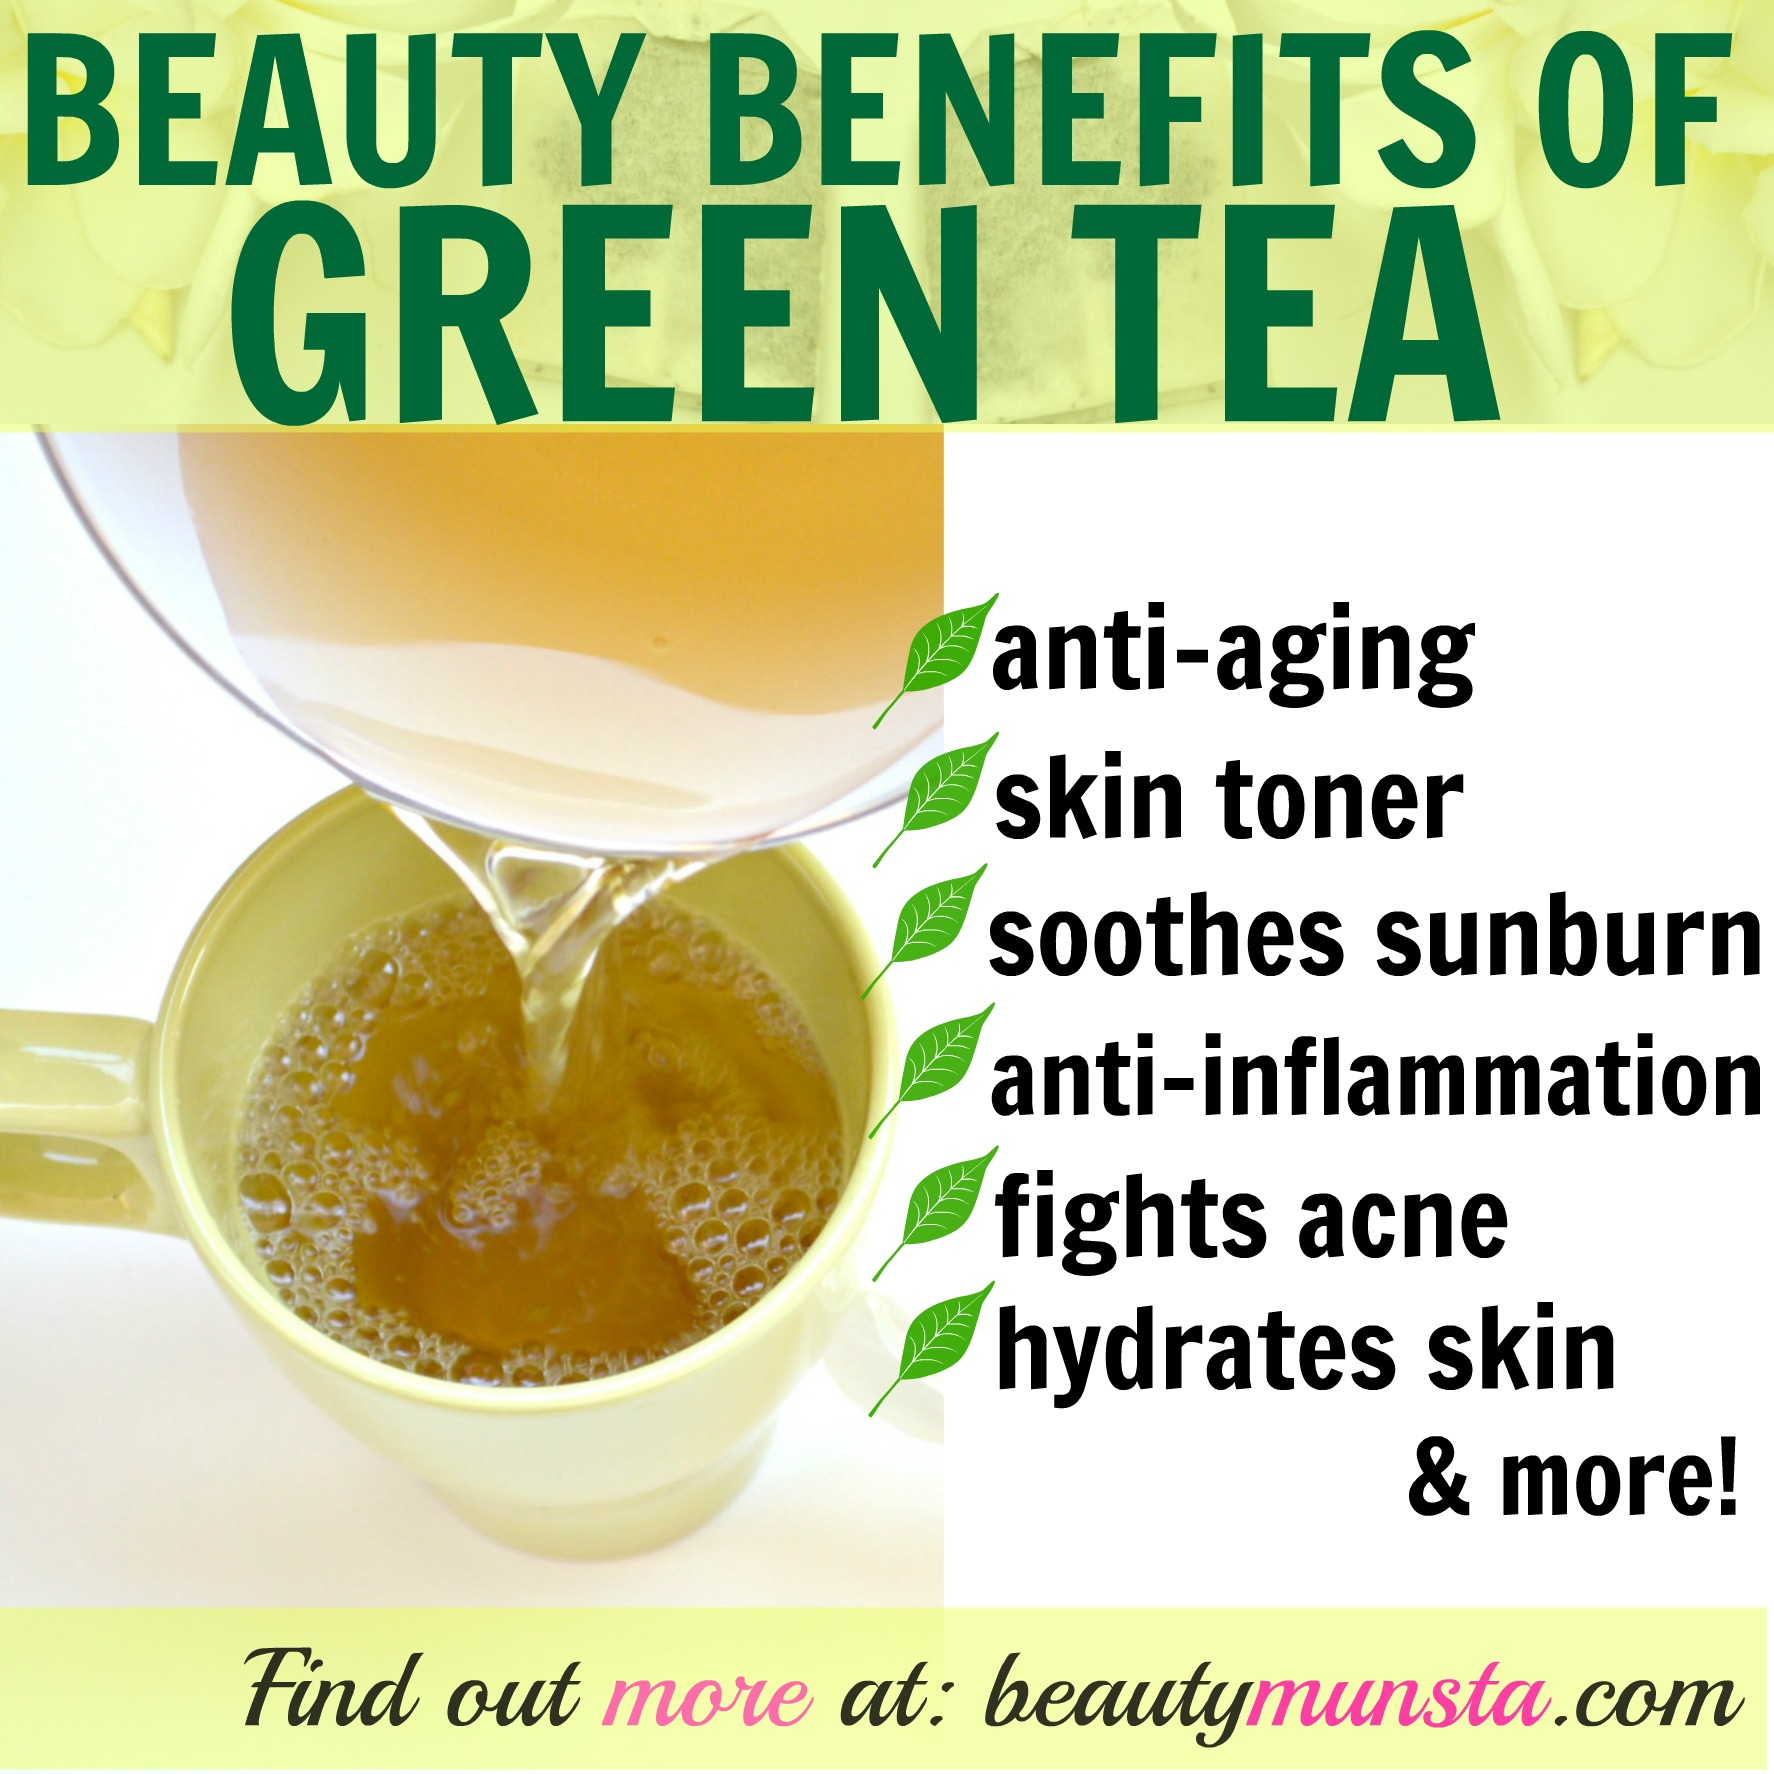 Find out 15 beauty benefits of green tea in this post! (Click on image to go to post)